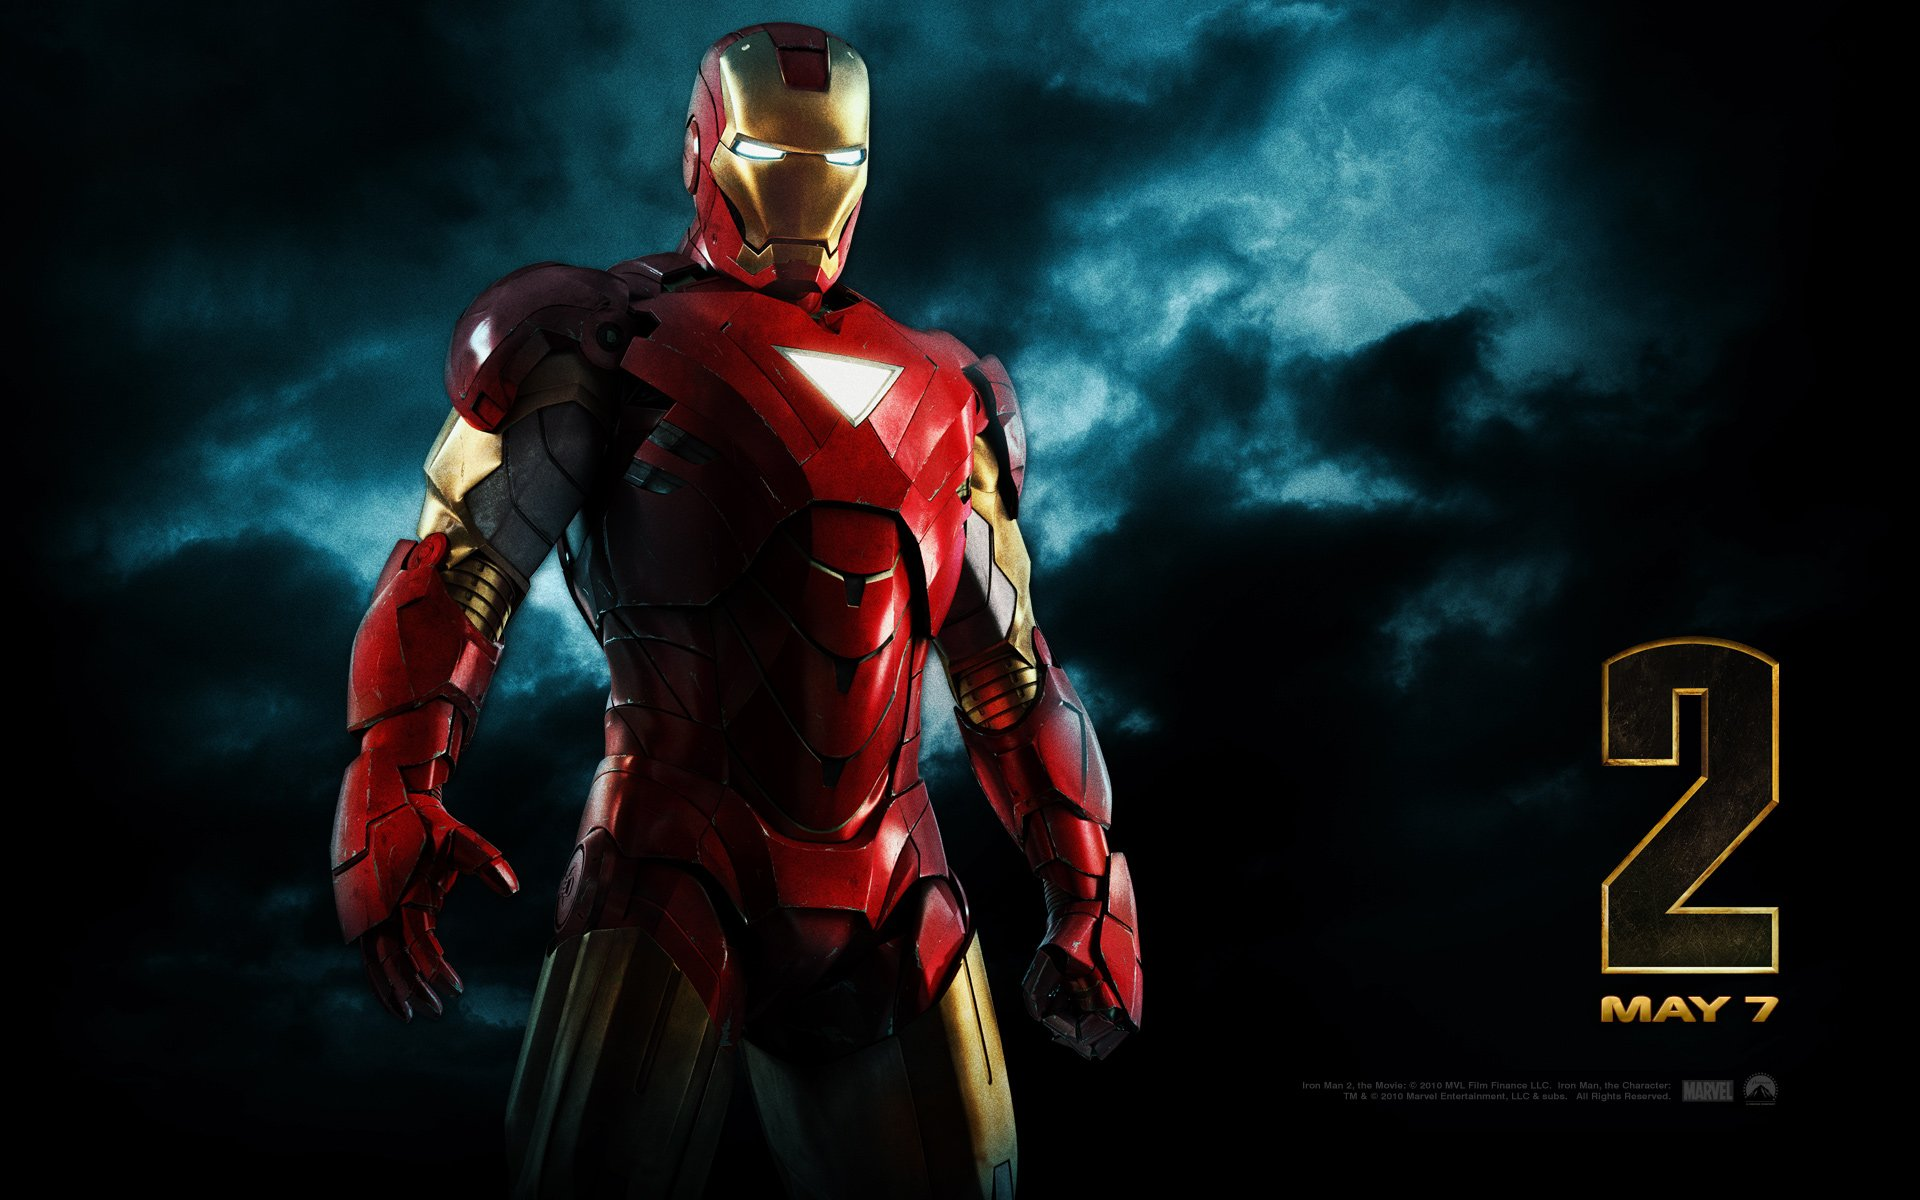 Iron Man Movie Wallpaper 3070